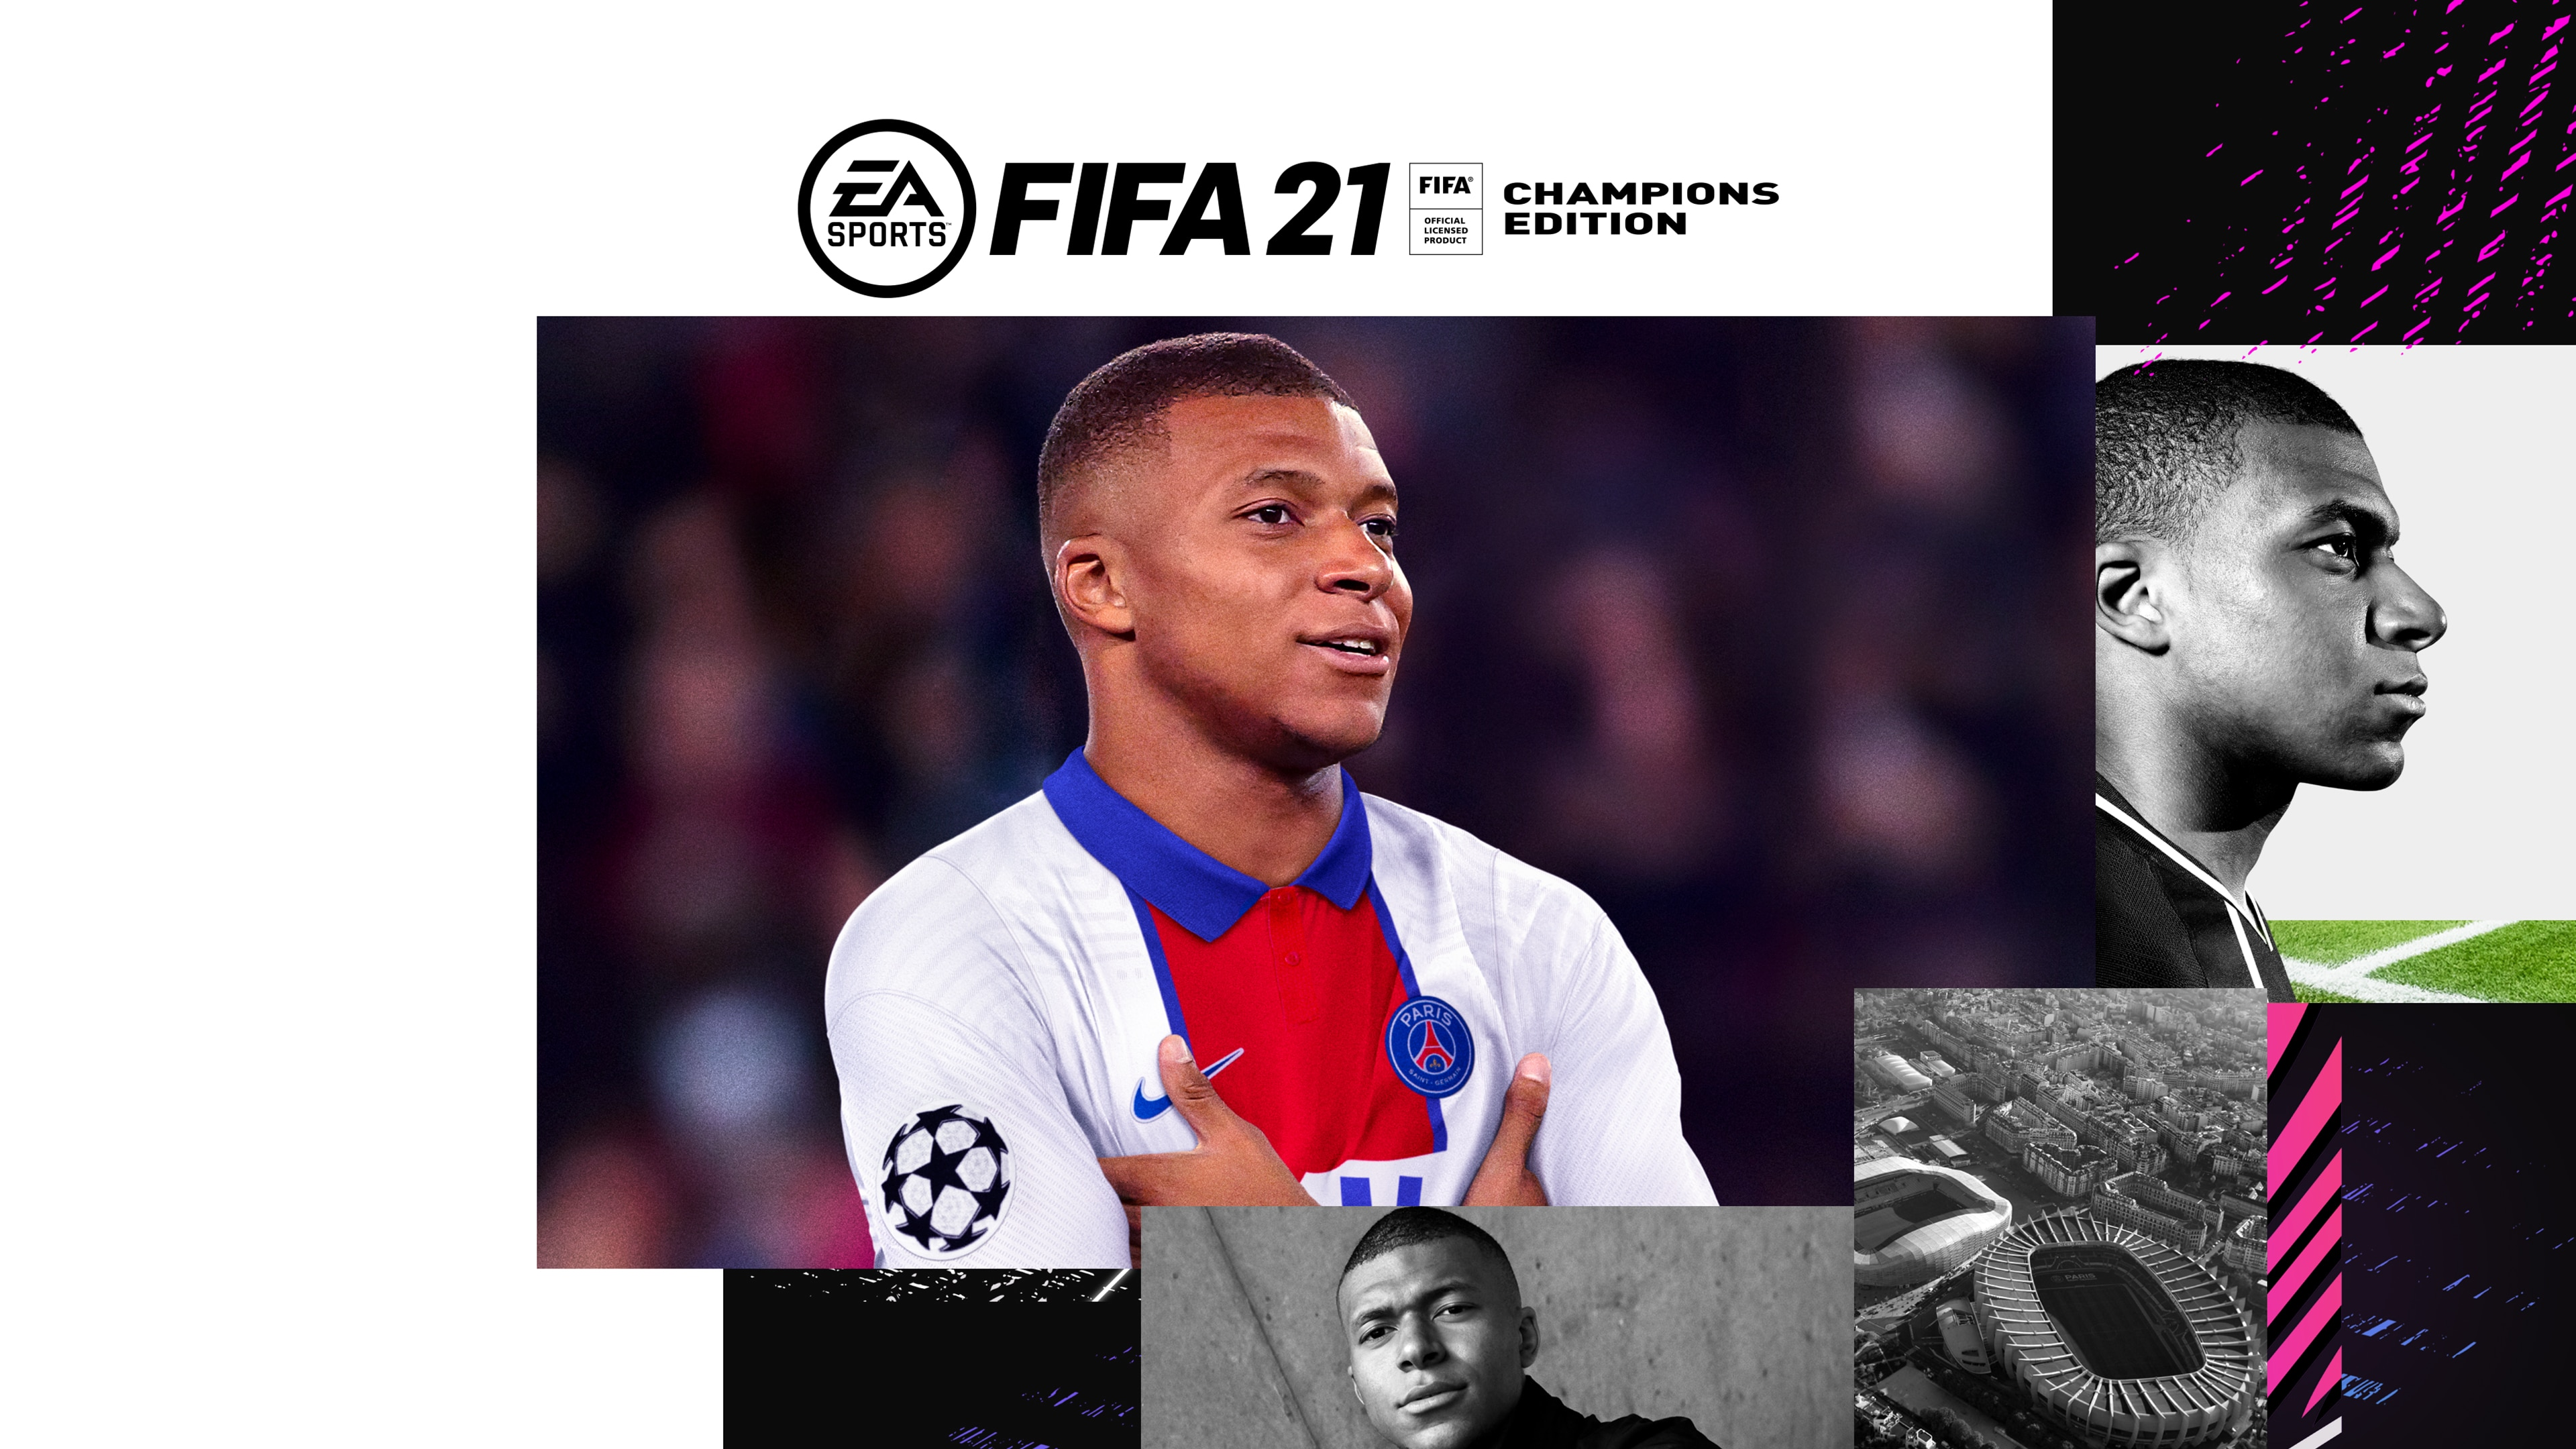 FIFA 21 Champions Edition PS4™ & PS5™